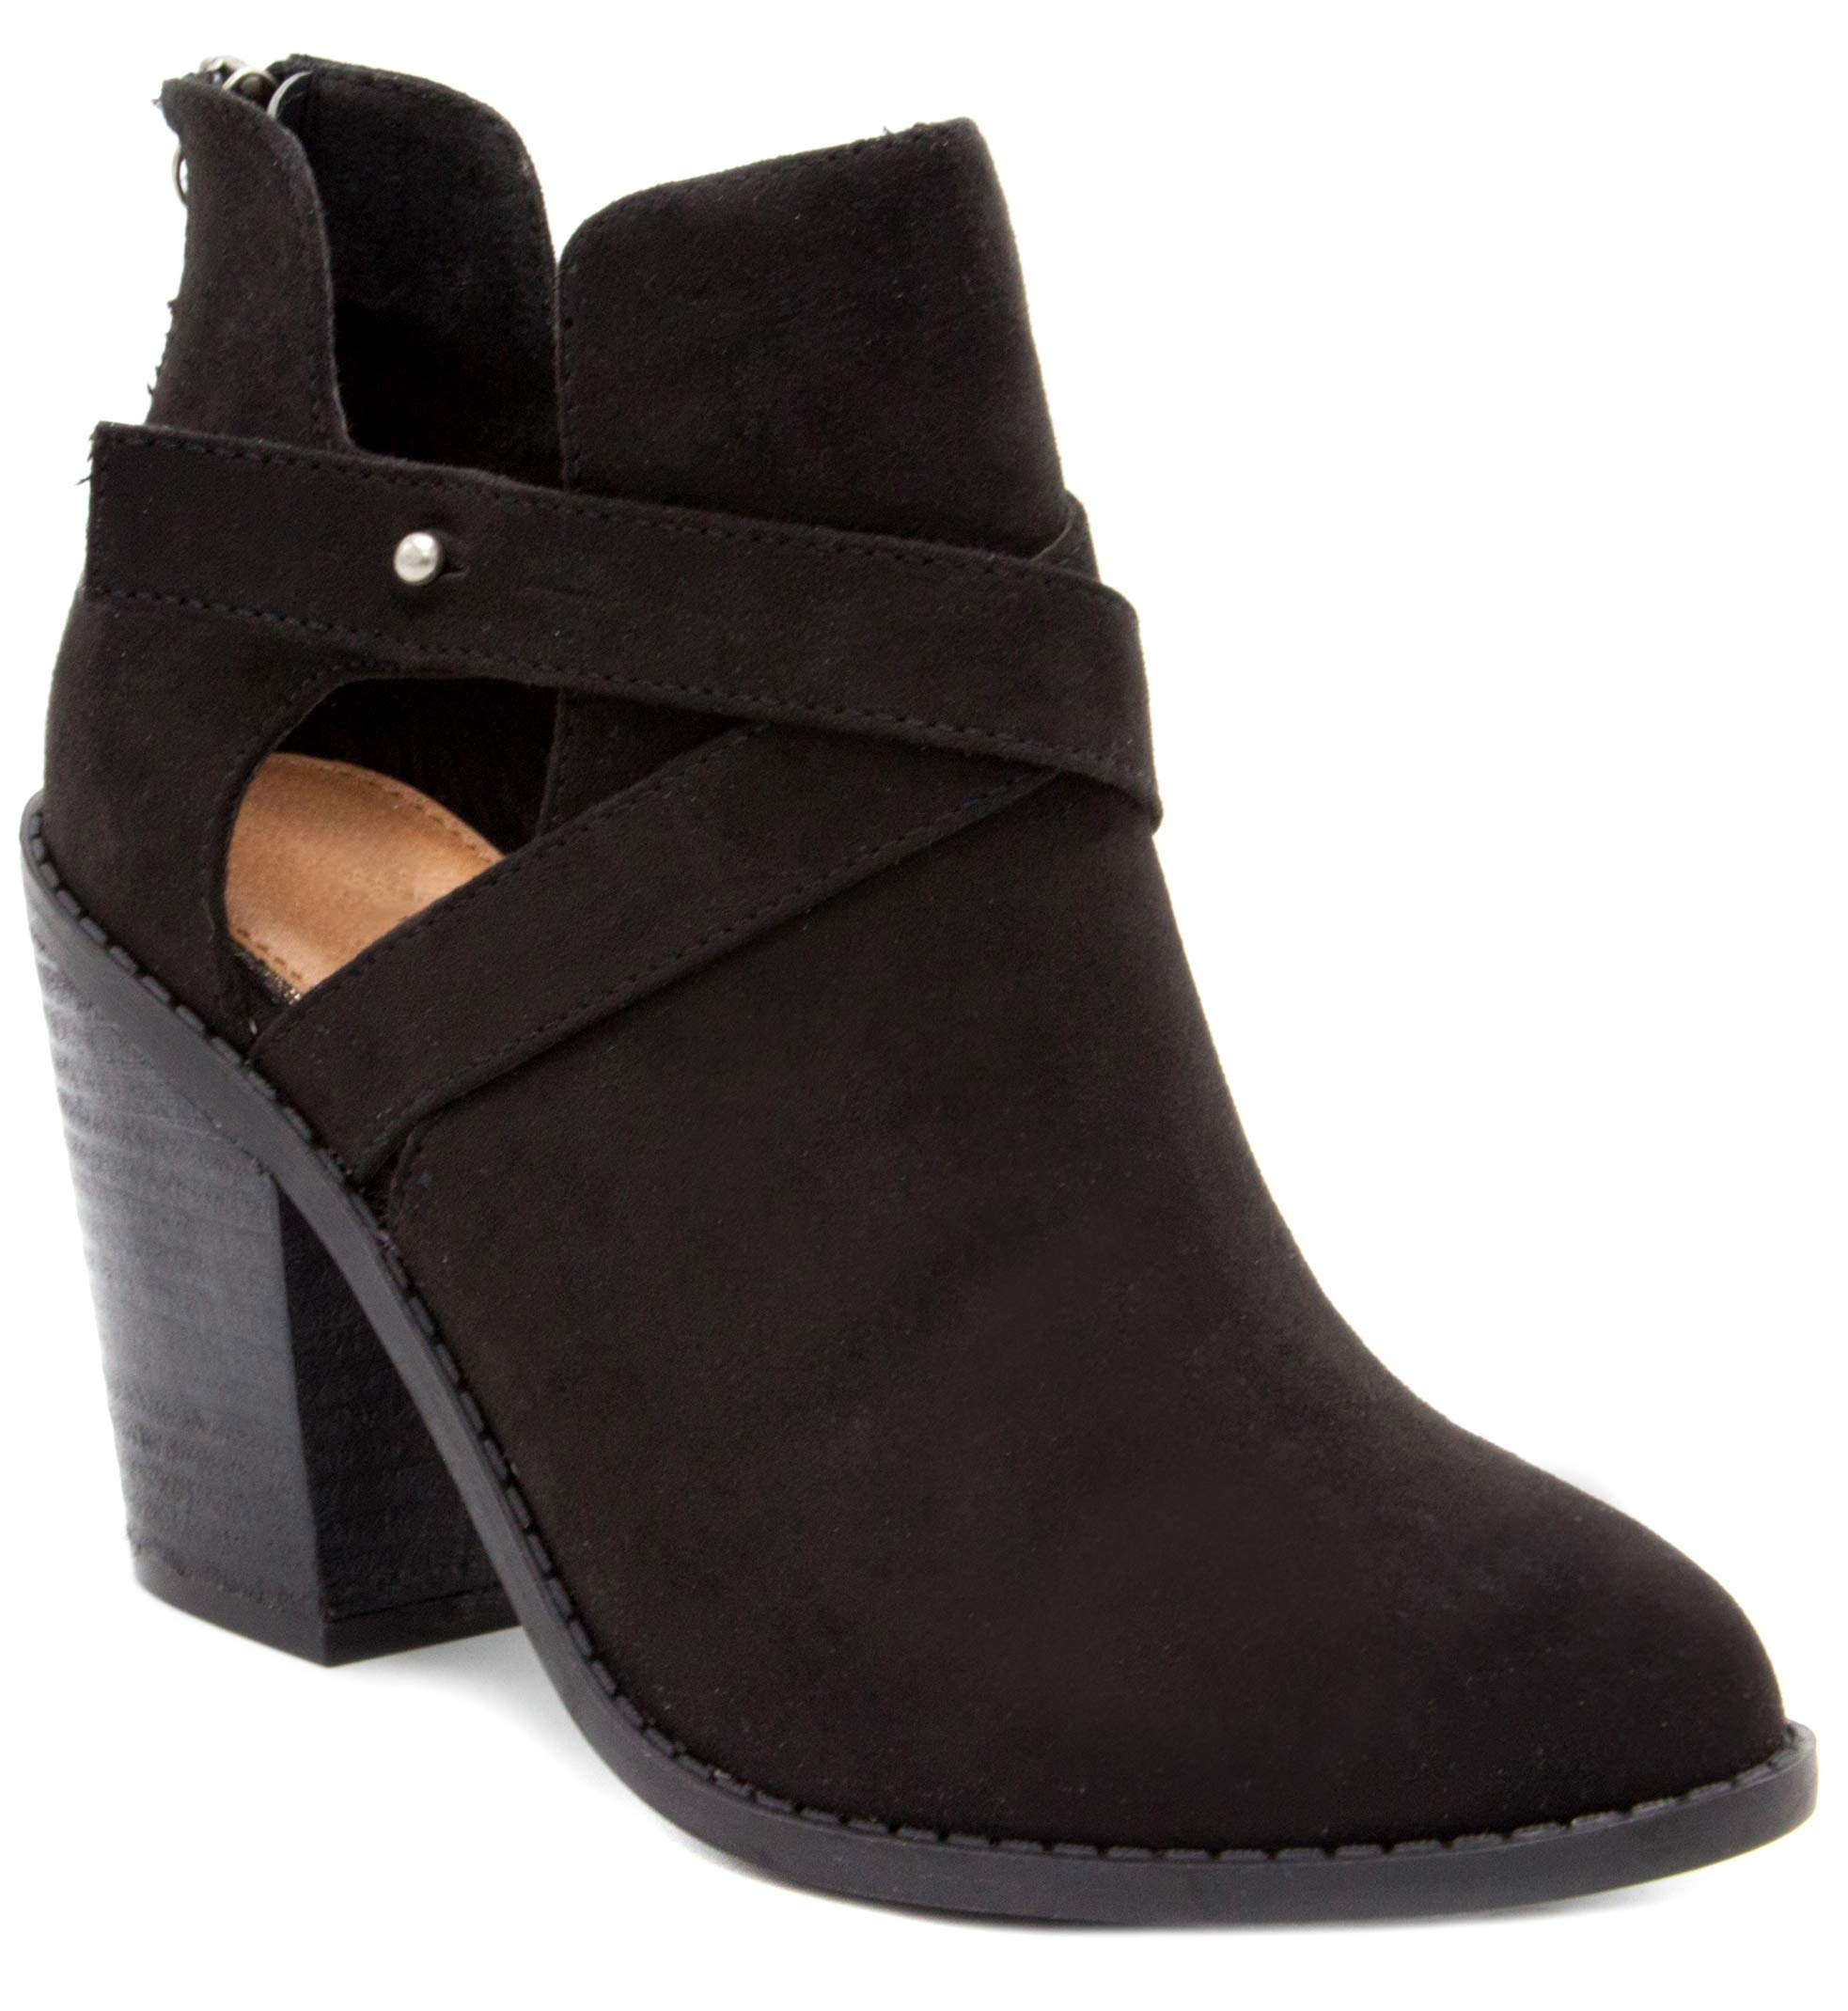 Sugar Women's Venti Transitional Block Heel Ankle Boot Ladies Bootie with Criss Cross Straps and Back Zip Black 7.5